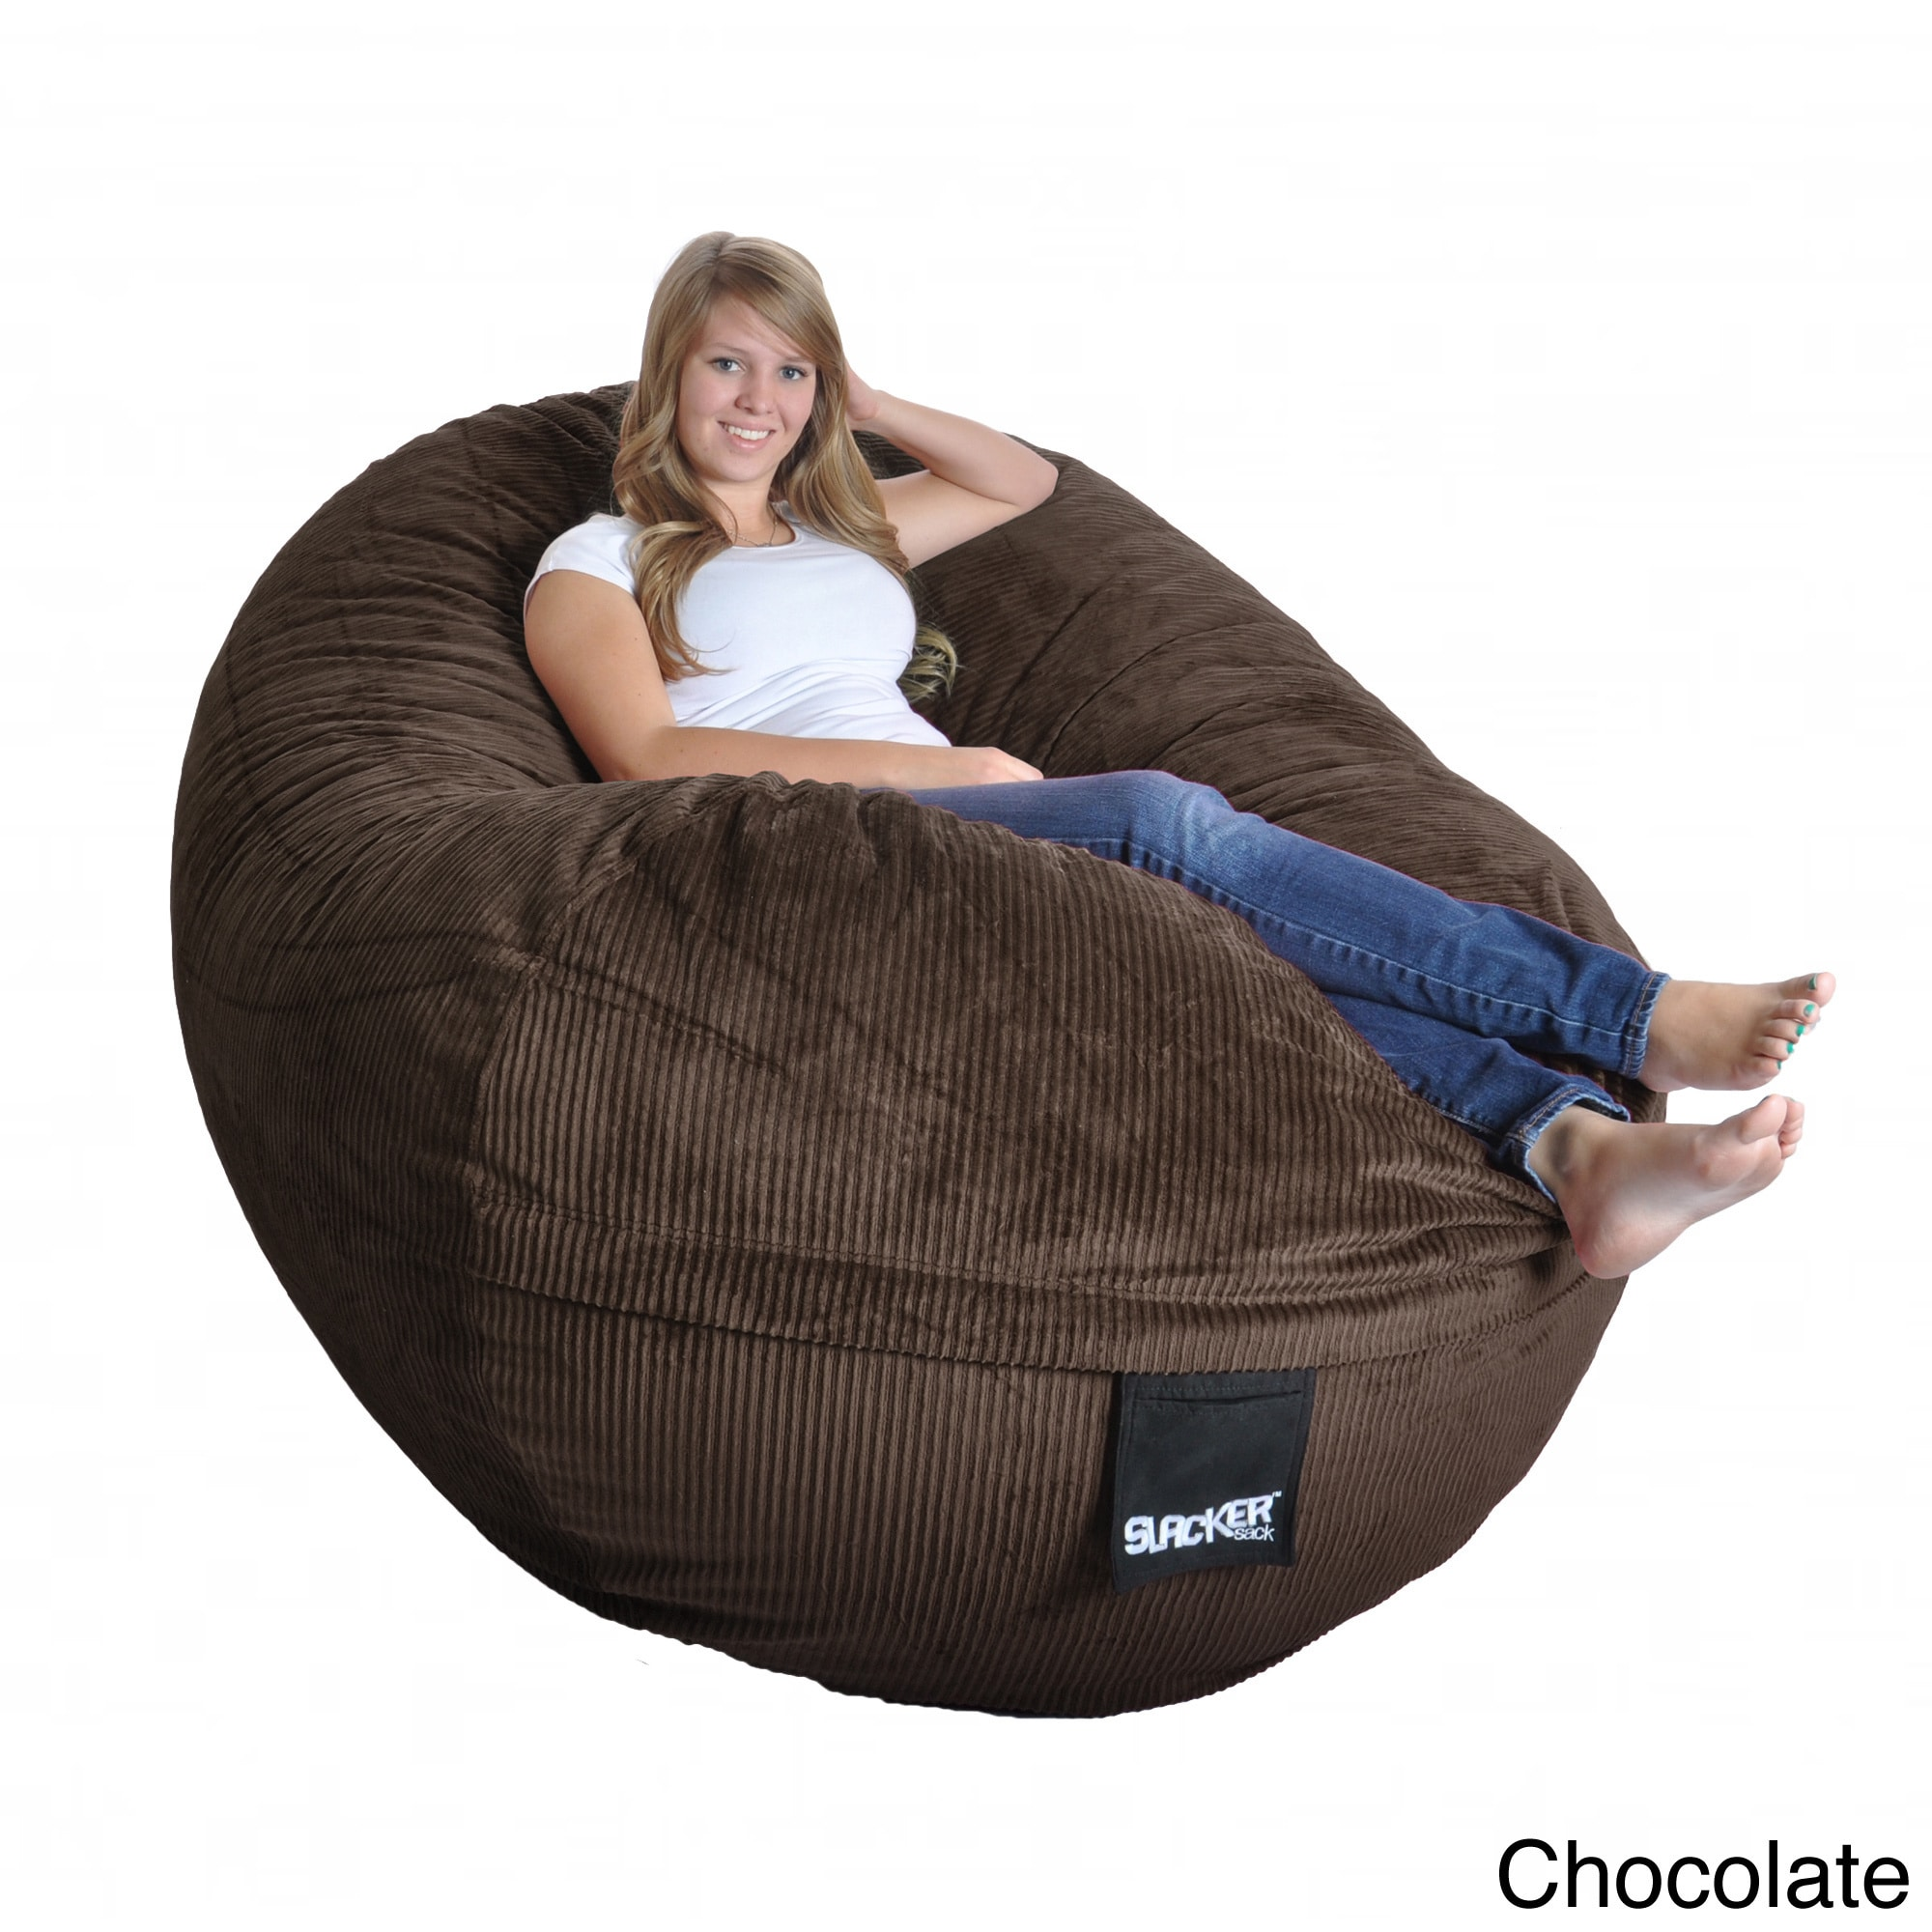 Slacker Sack Corduroy Oval Large Microfiber Suede And Foam Bean Bag Chair